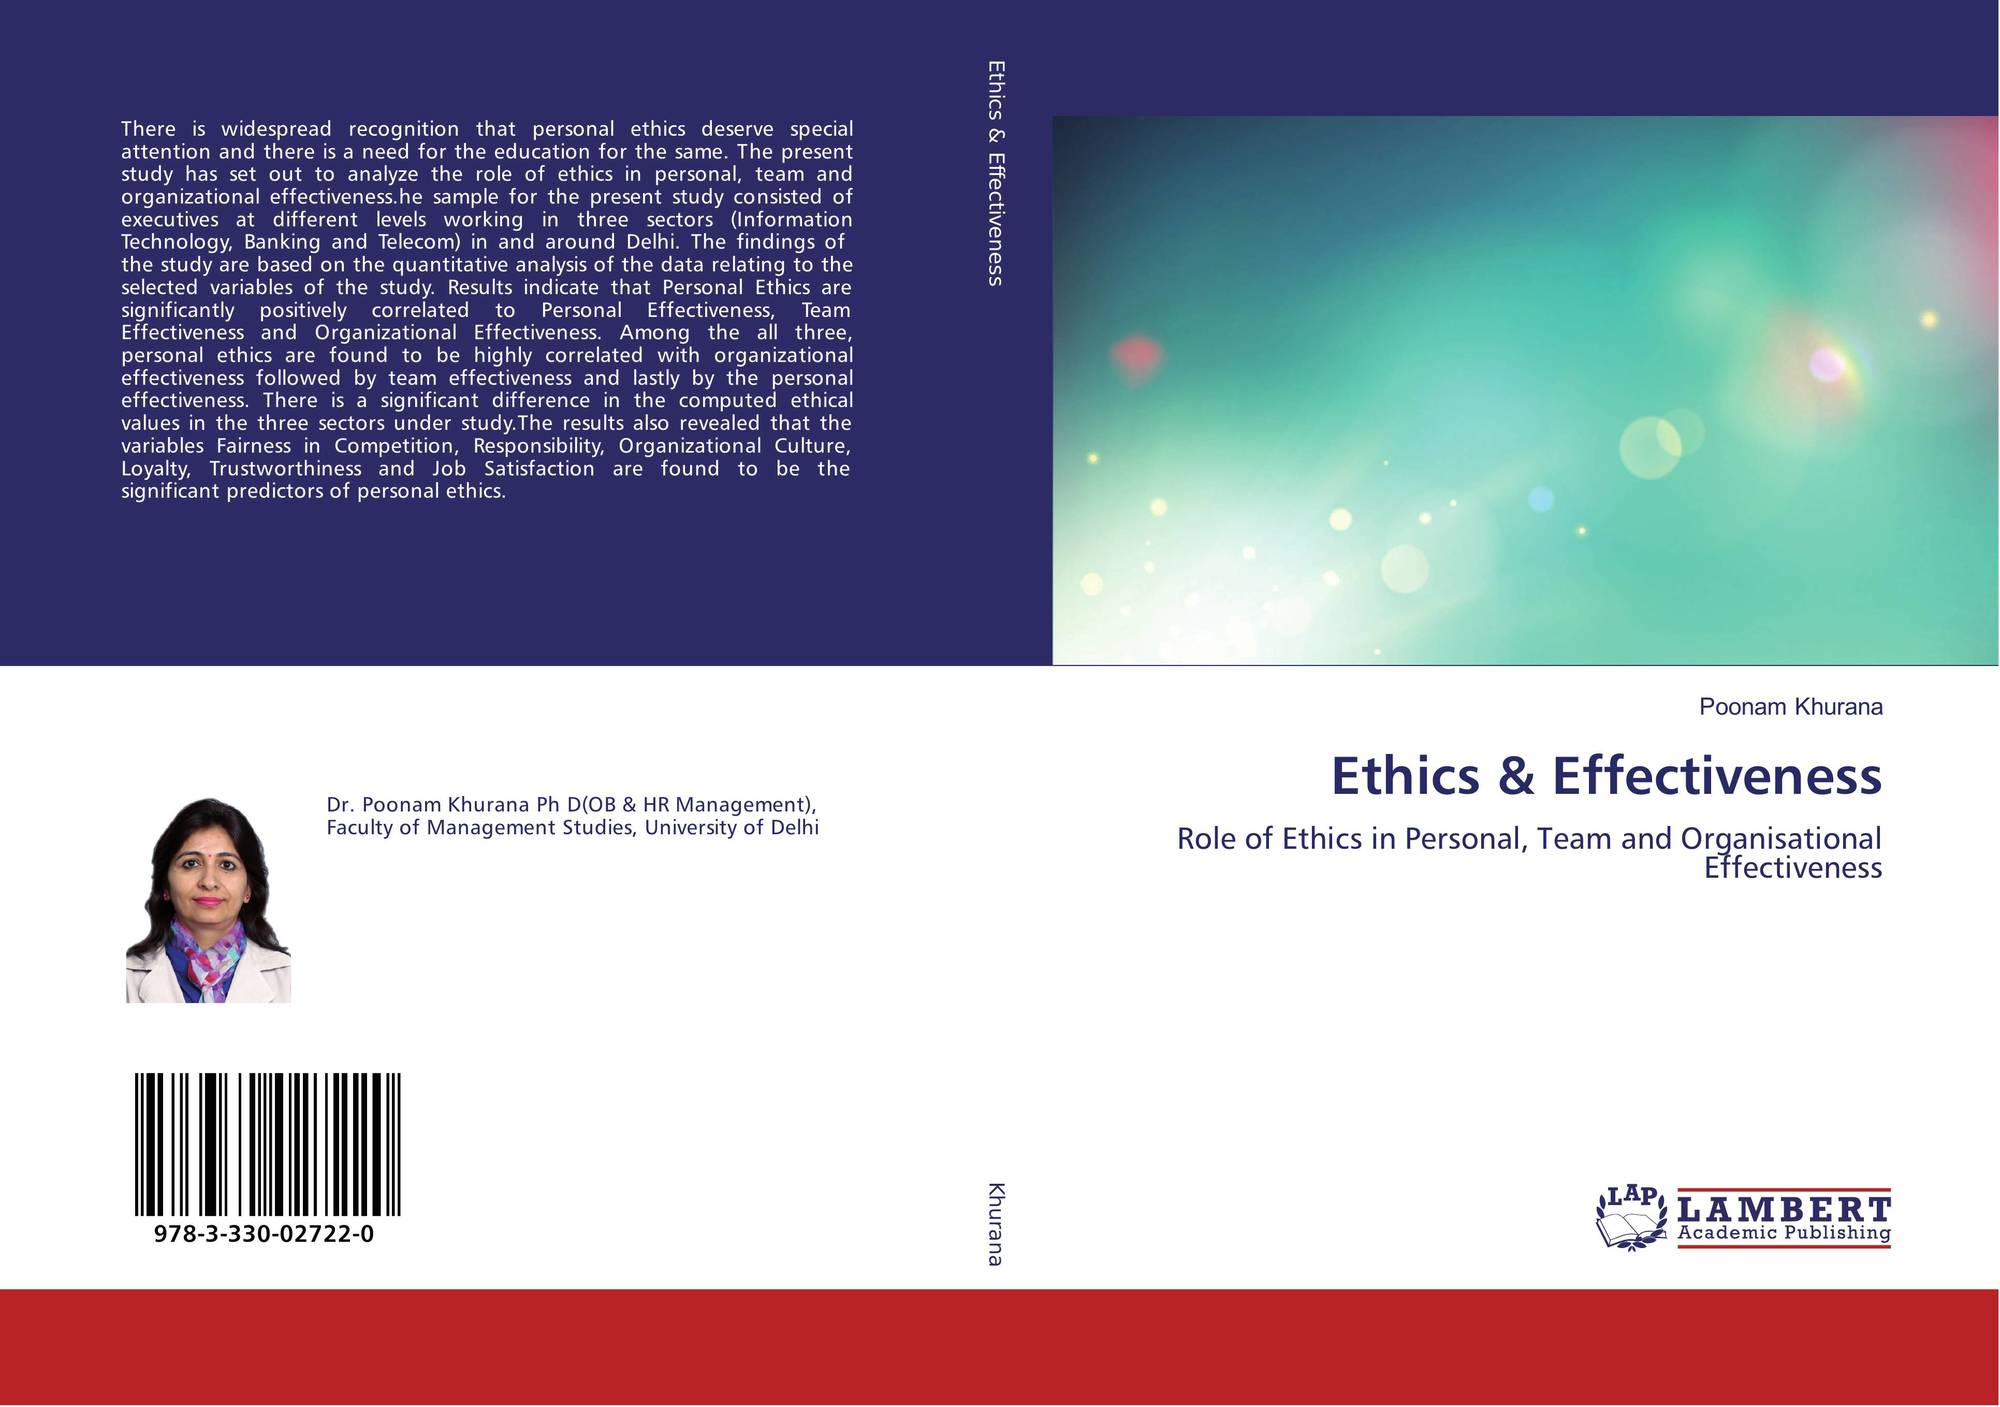 analysis of personal and organizational ethics Case study: analysis of personal and organizational ethics and values between for-profit and not-for-profit organizations introduction since the 1980s, public administrations have been viewed increasingly as inefficient in comparison with organizations governed through market principles, which are considered as being both more conducive to the.